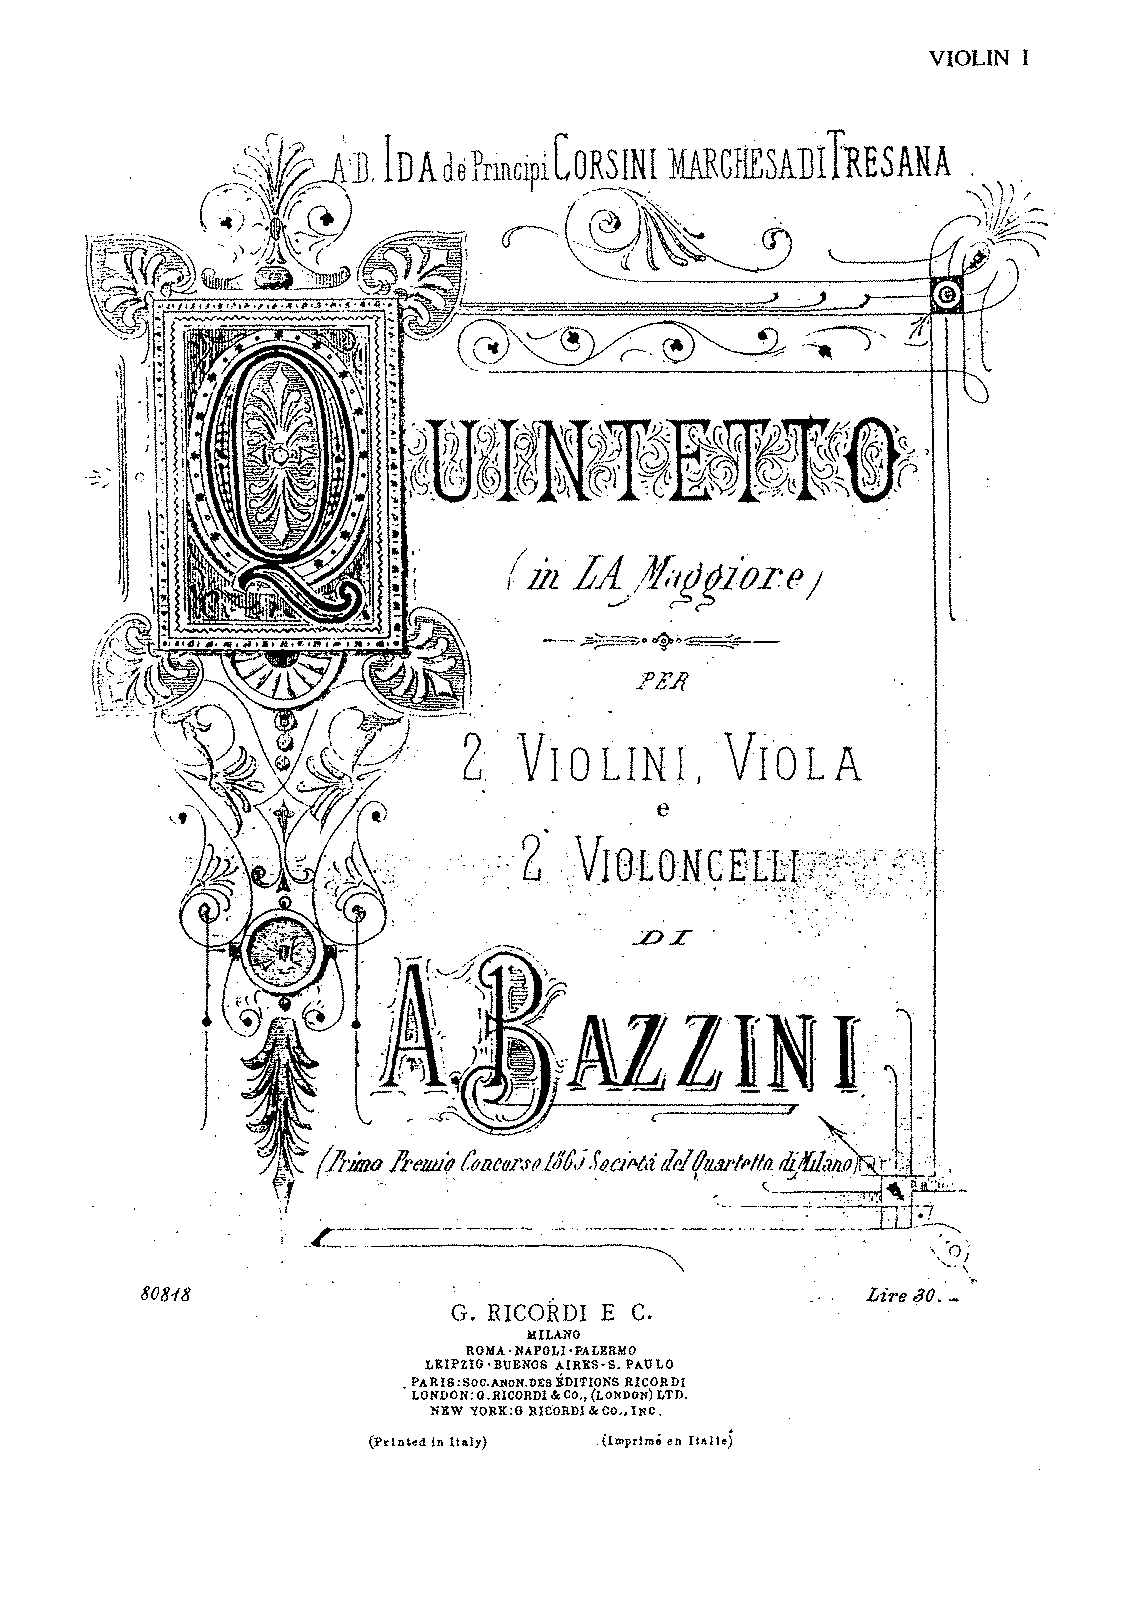 PMLP129159-Bazzini - String Quintet in AM for 2 Violins Viola and 2 Cellos Vln1.pdf